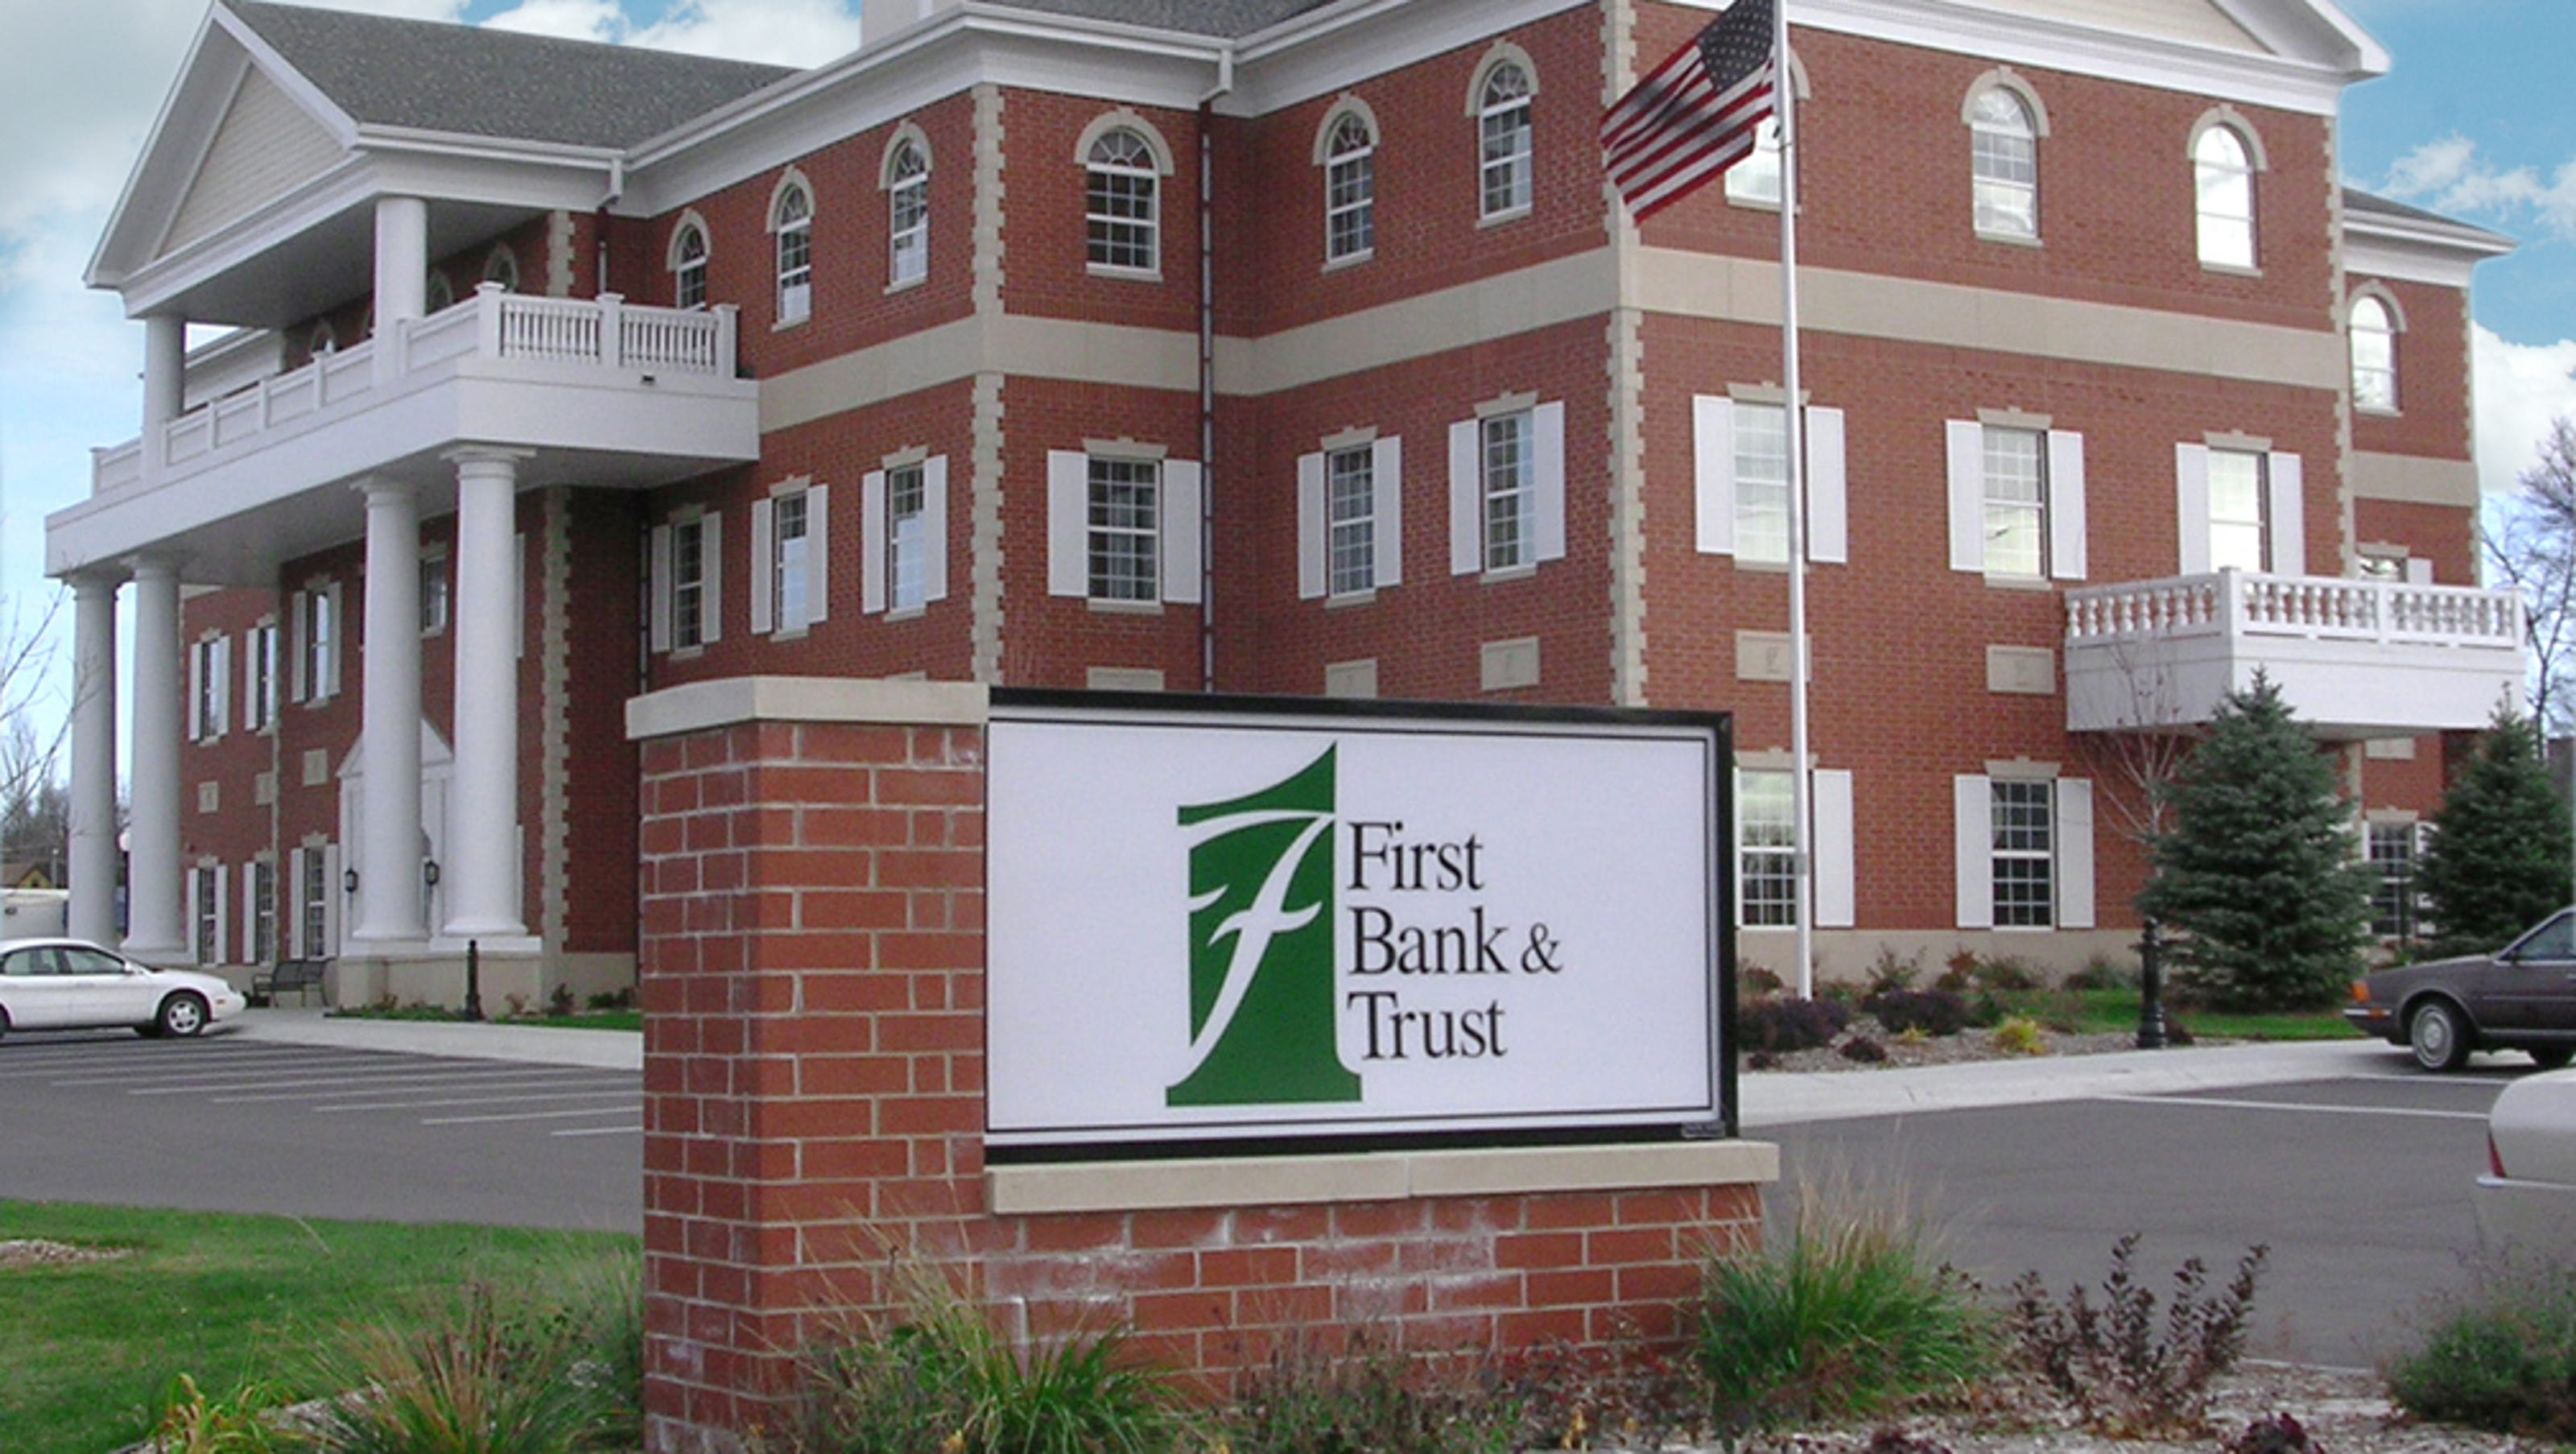 first bank & trust expands into minnesota with planned acquisition